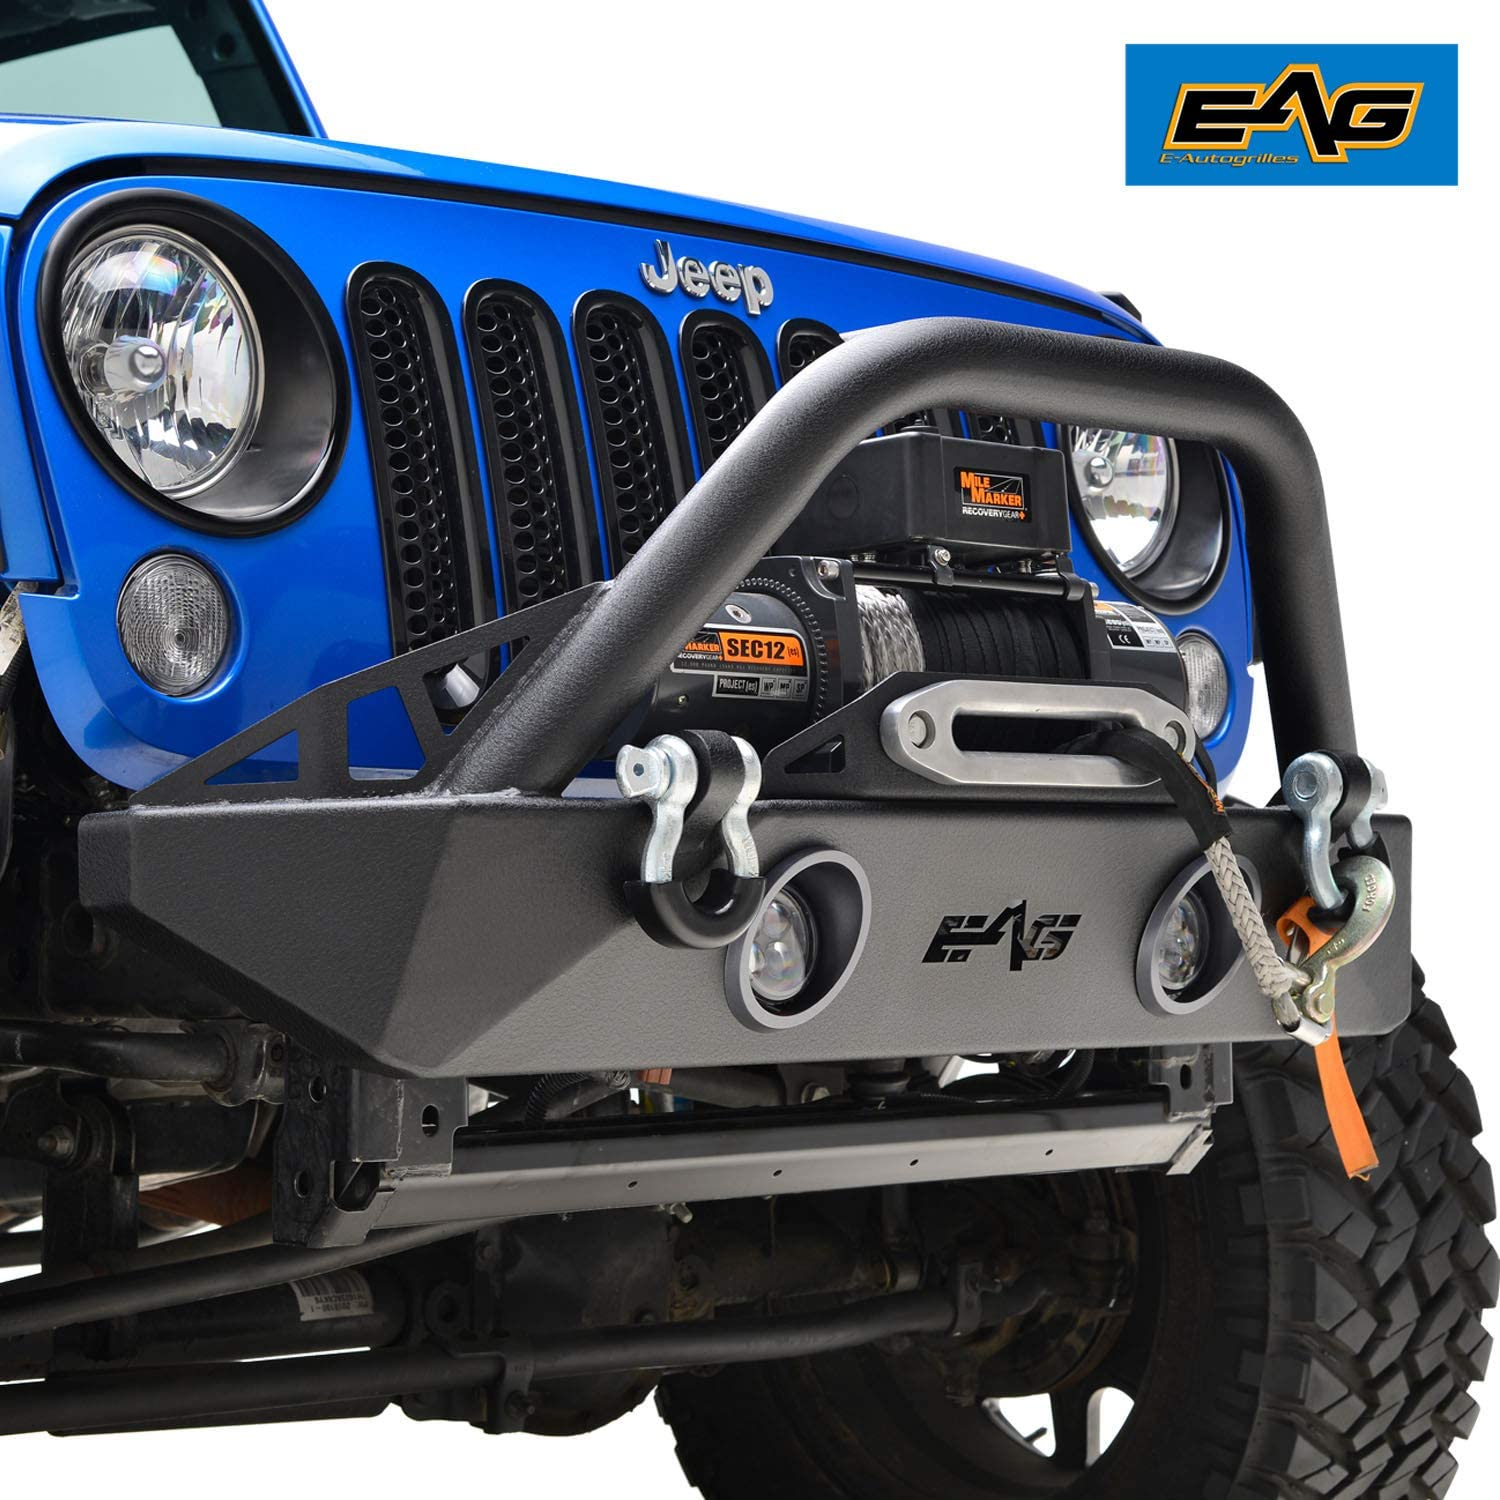 EAG Stubby Front National uniform free shipping Bumper W LED Mail order Winch 07-18 Plate Lights Fit for